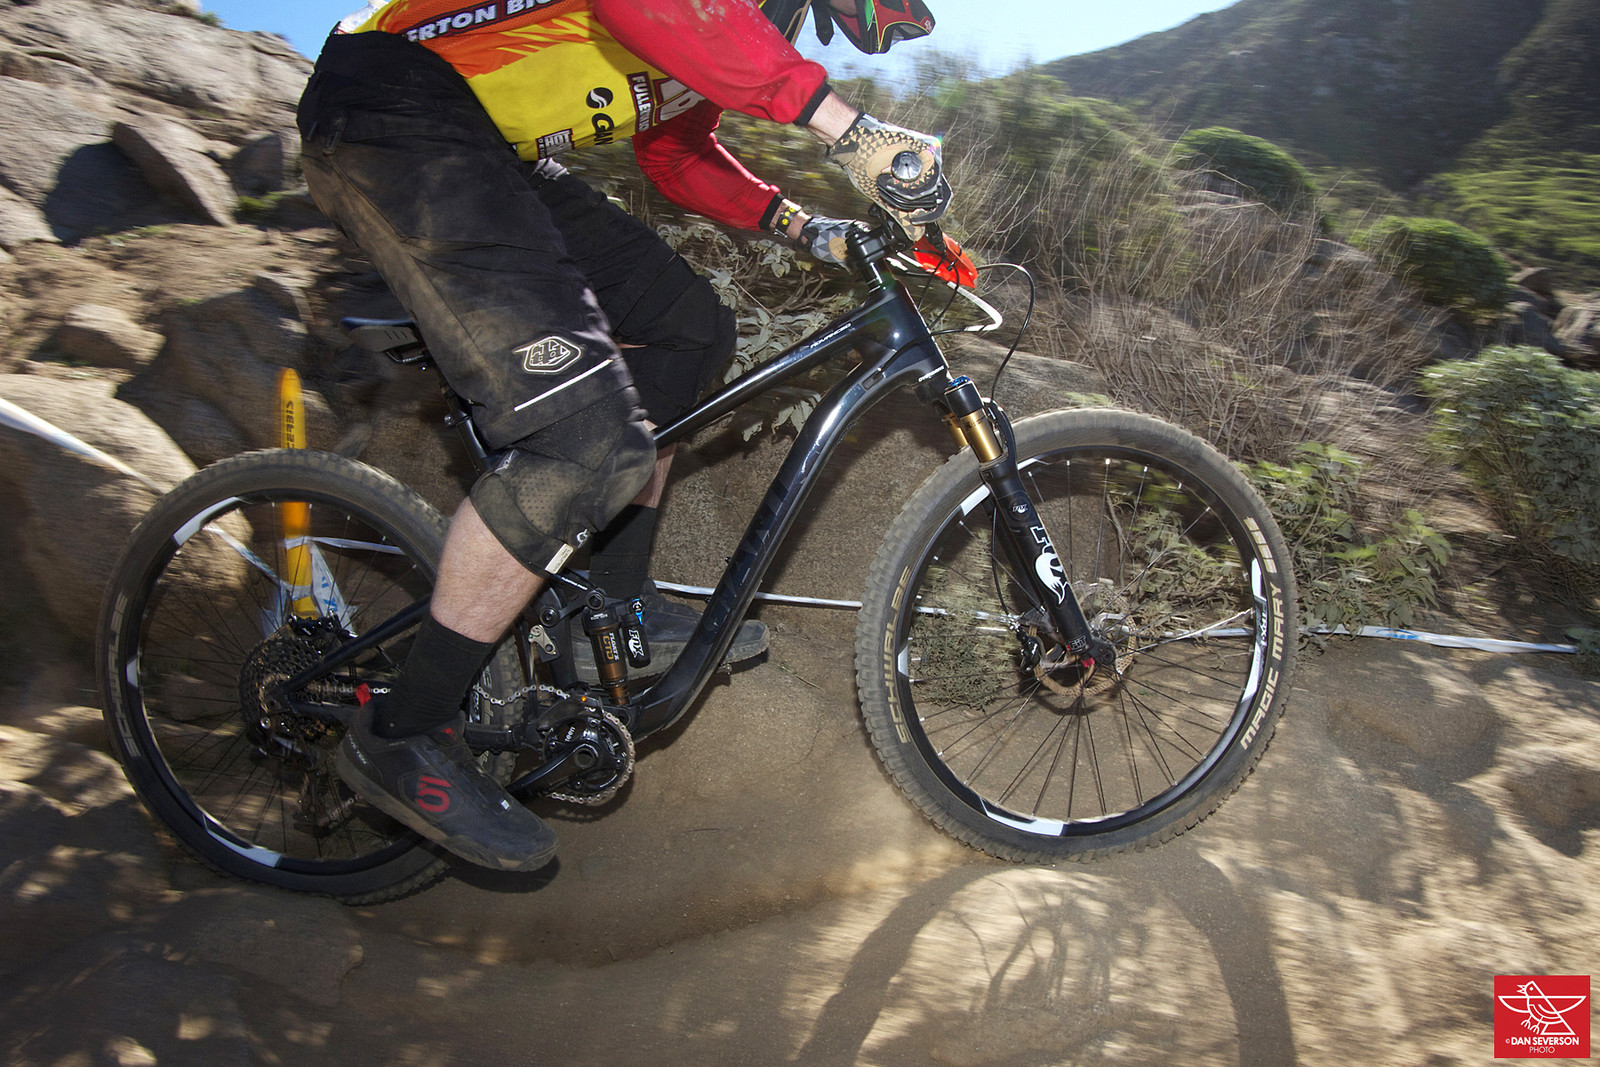 G-Out Project: Fontana 2015 - Giant Trance - danseverson photo - Mountain Biking Pictures - Vital MTB